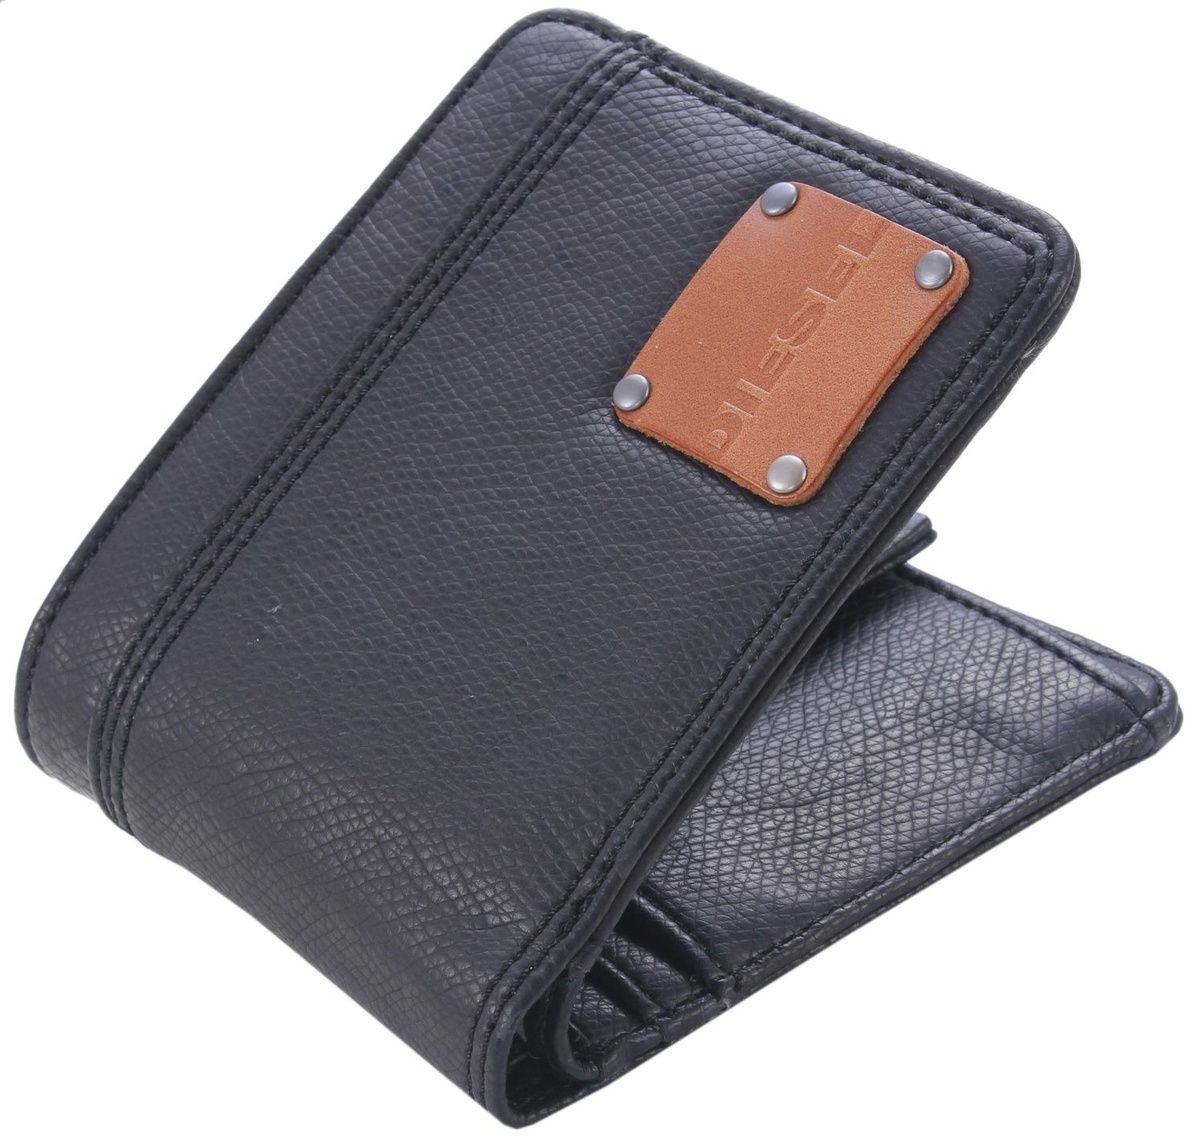 Están familiarizados imitar inteligente  Diesel Wallets - Black Core Hiresh Small Wallet #Mens #Wallet If you love  fashion check us out. We're always adding new products for your closet!